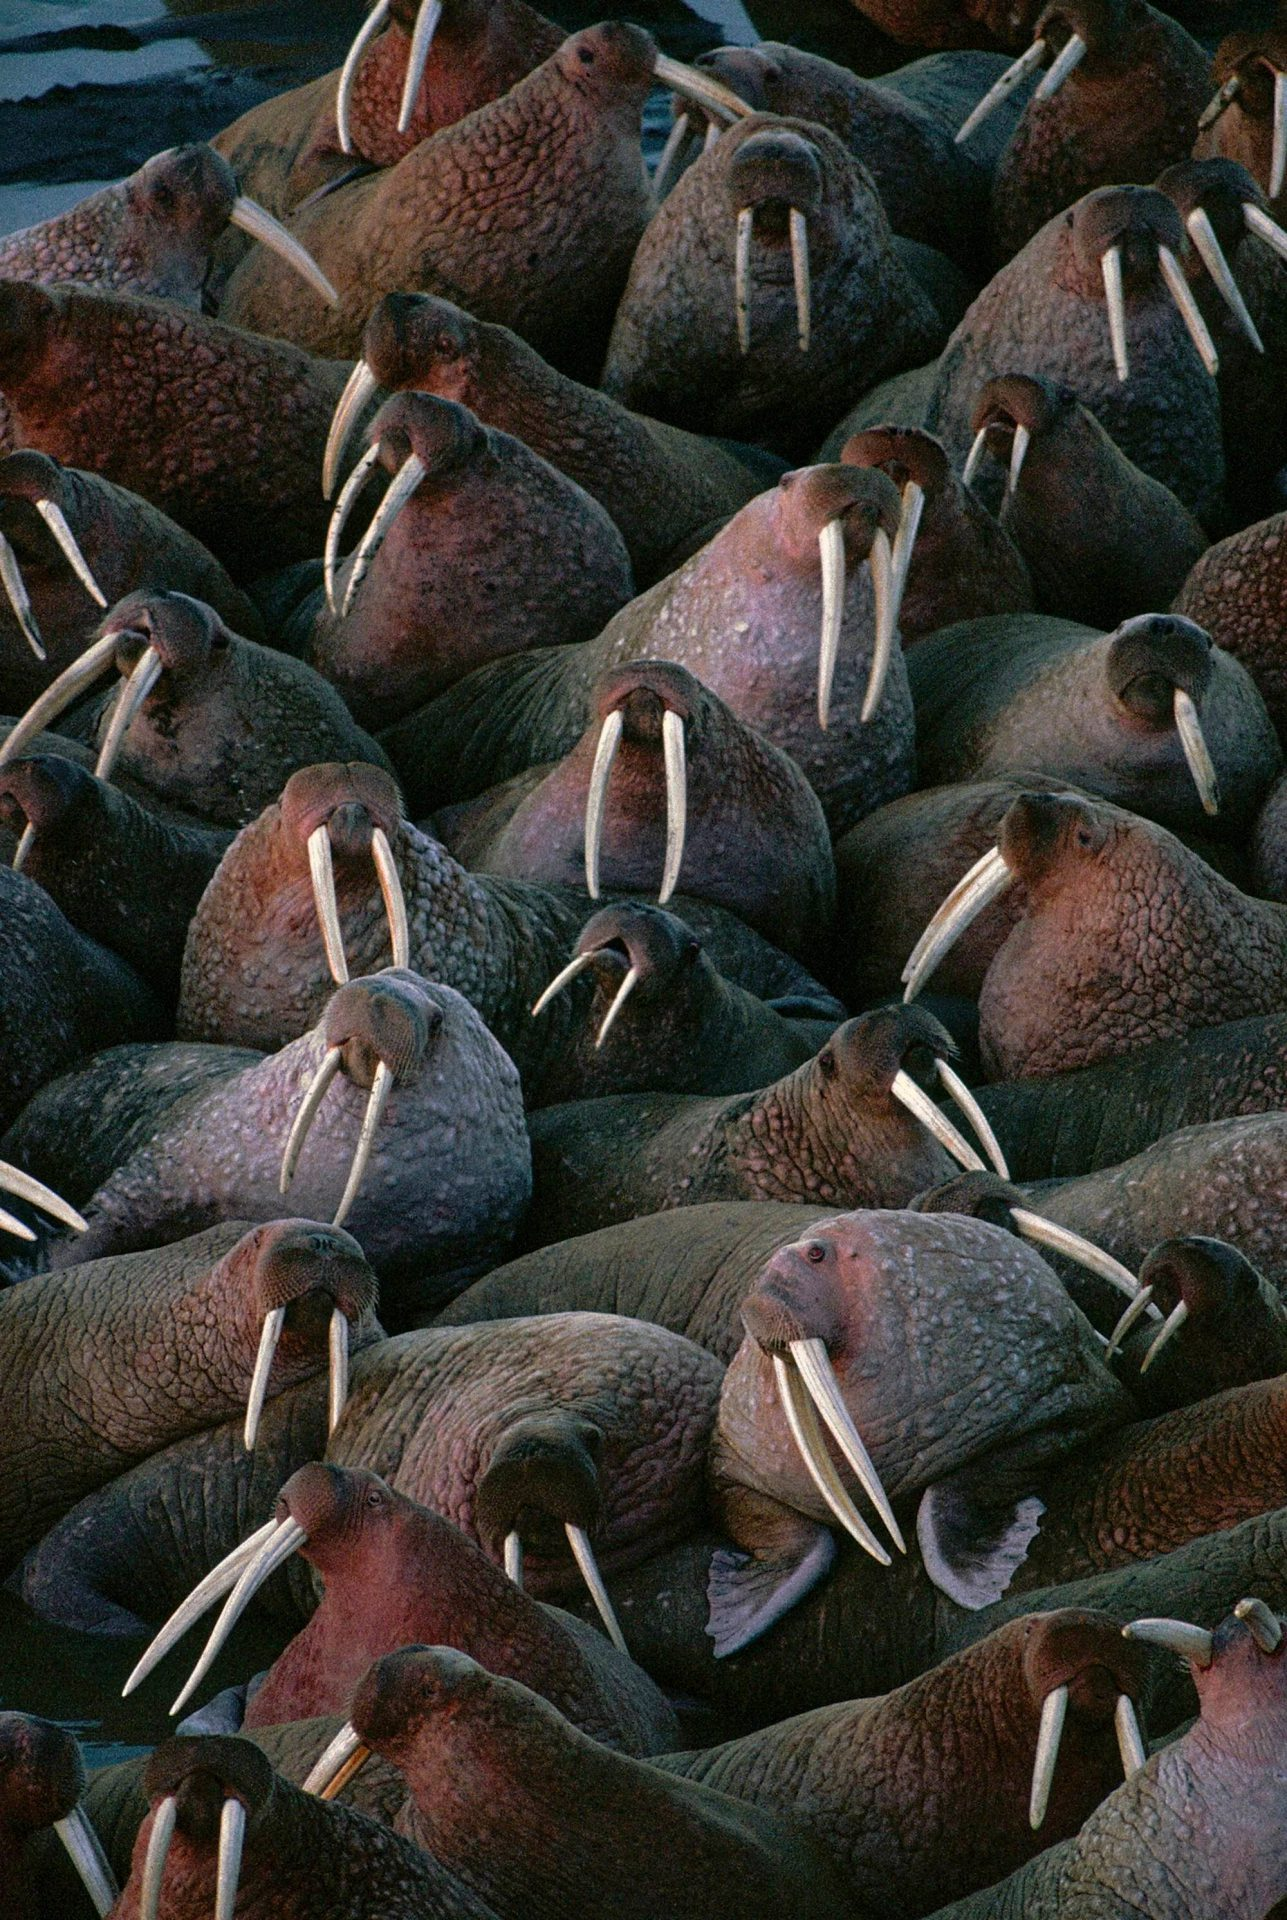 Photo: Male walrus gather by the thousands to sun themselves on the beach at Togiak National Wildlife Refuge, Alaska.